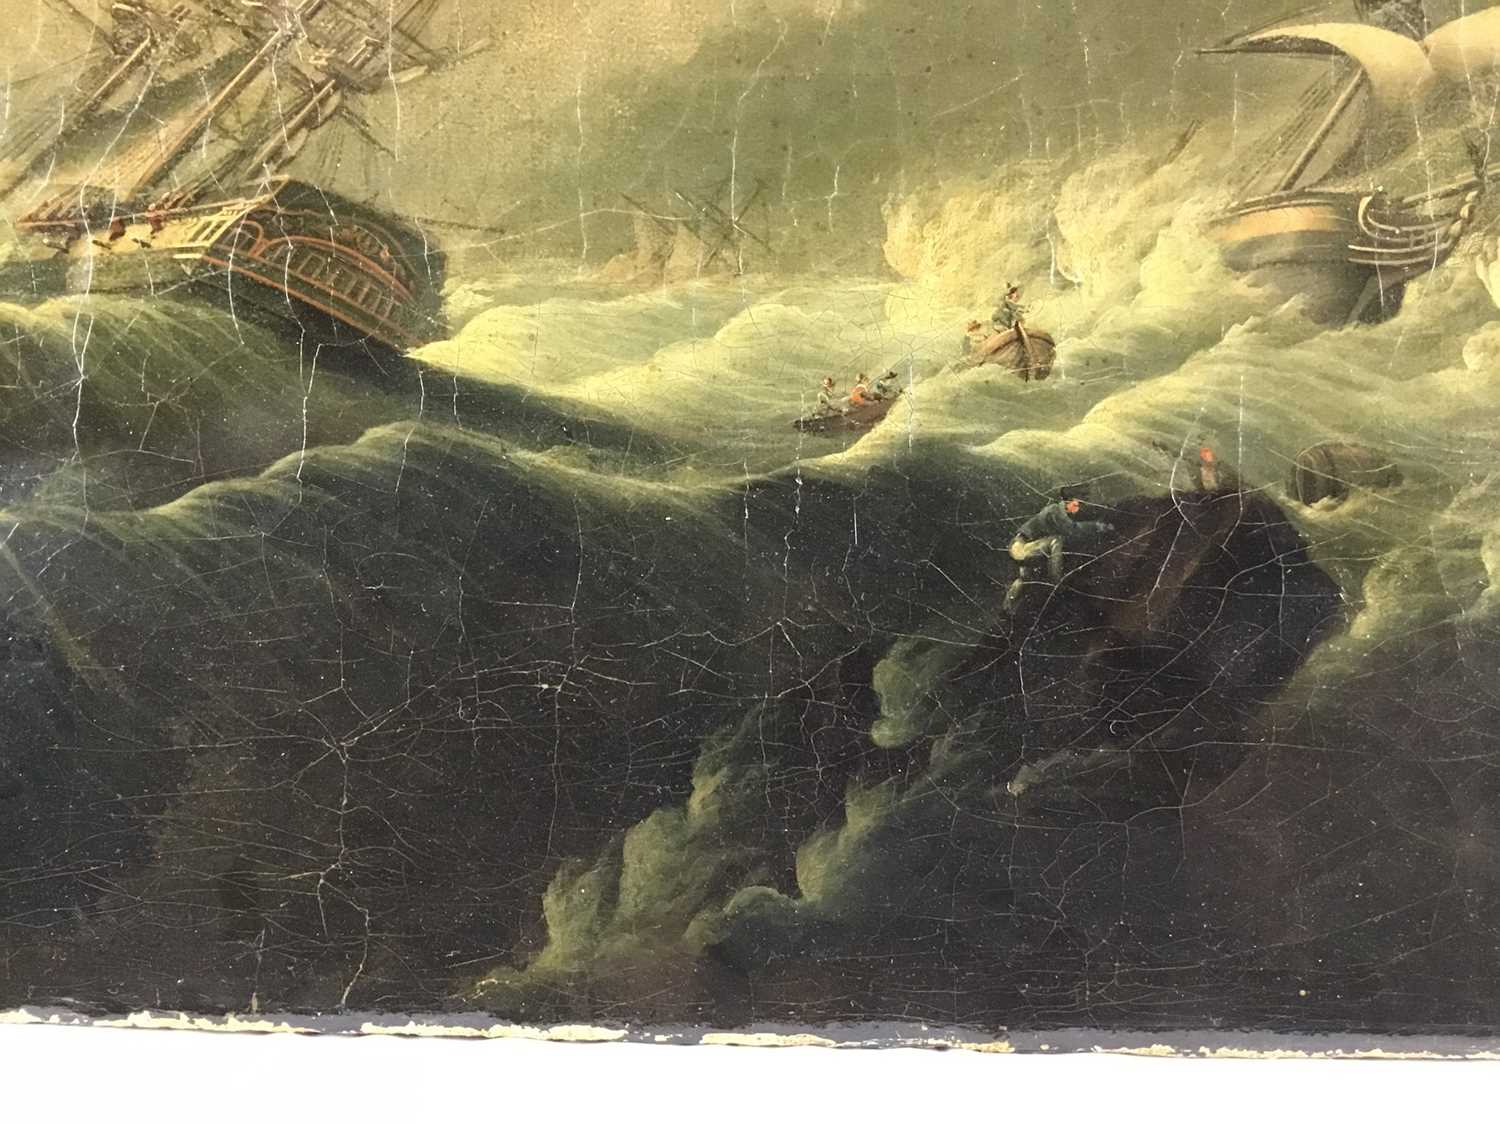 Attributed to Joseph Vernet (1714-1789) oil on canvas - shipping crashing against the rocks, 55cm x - Image 3 of 12